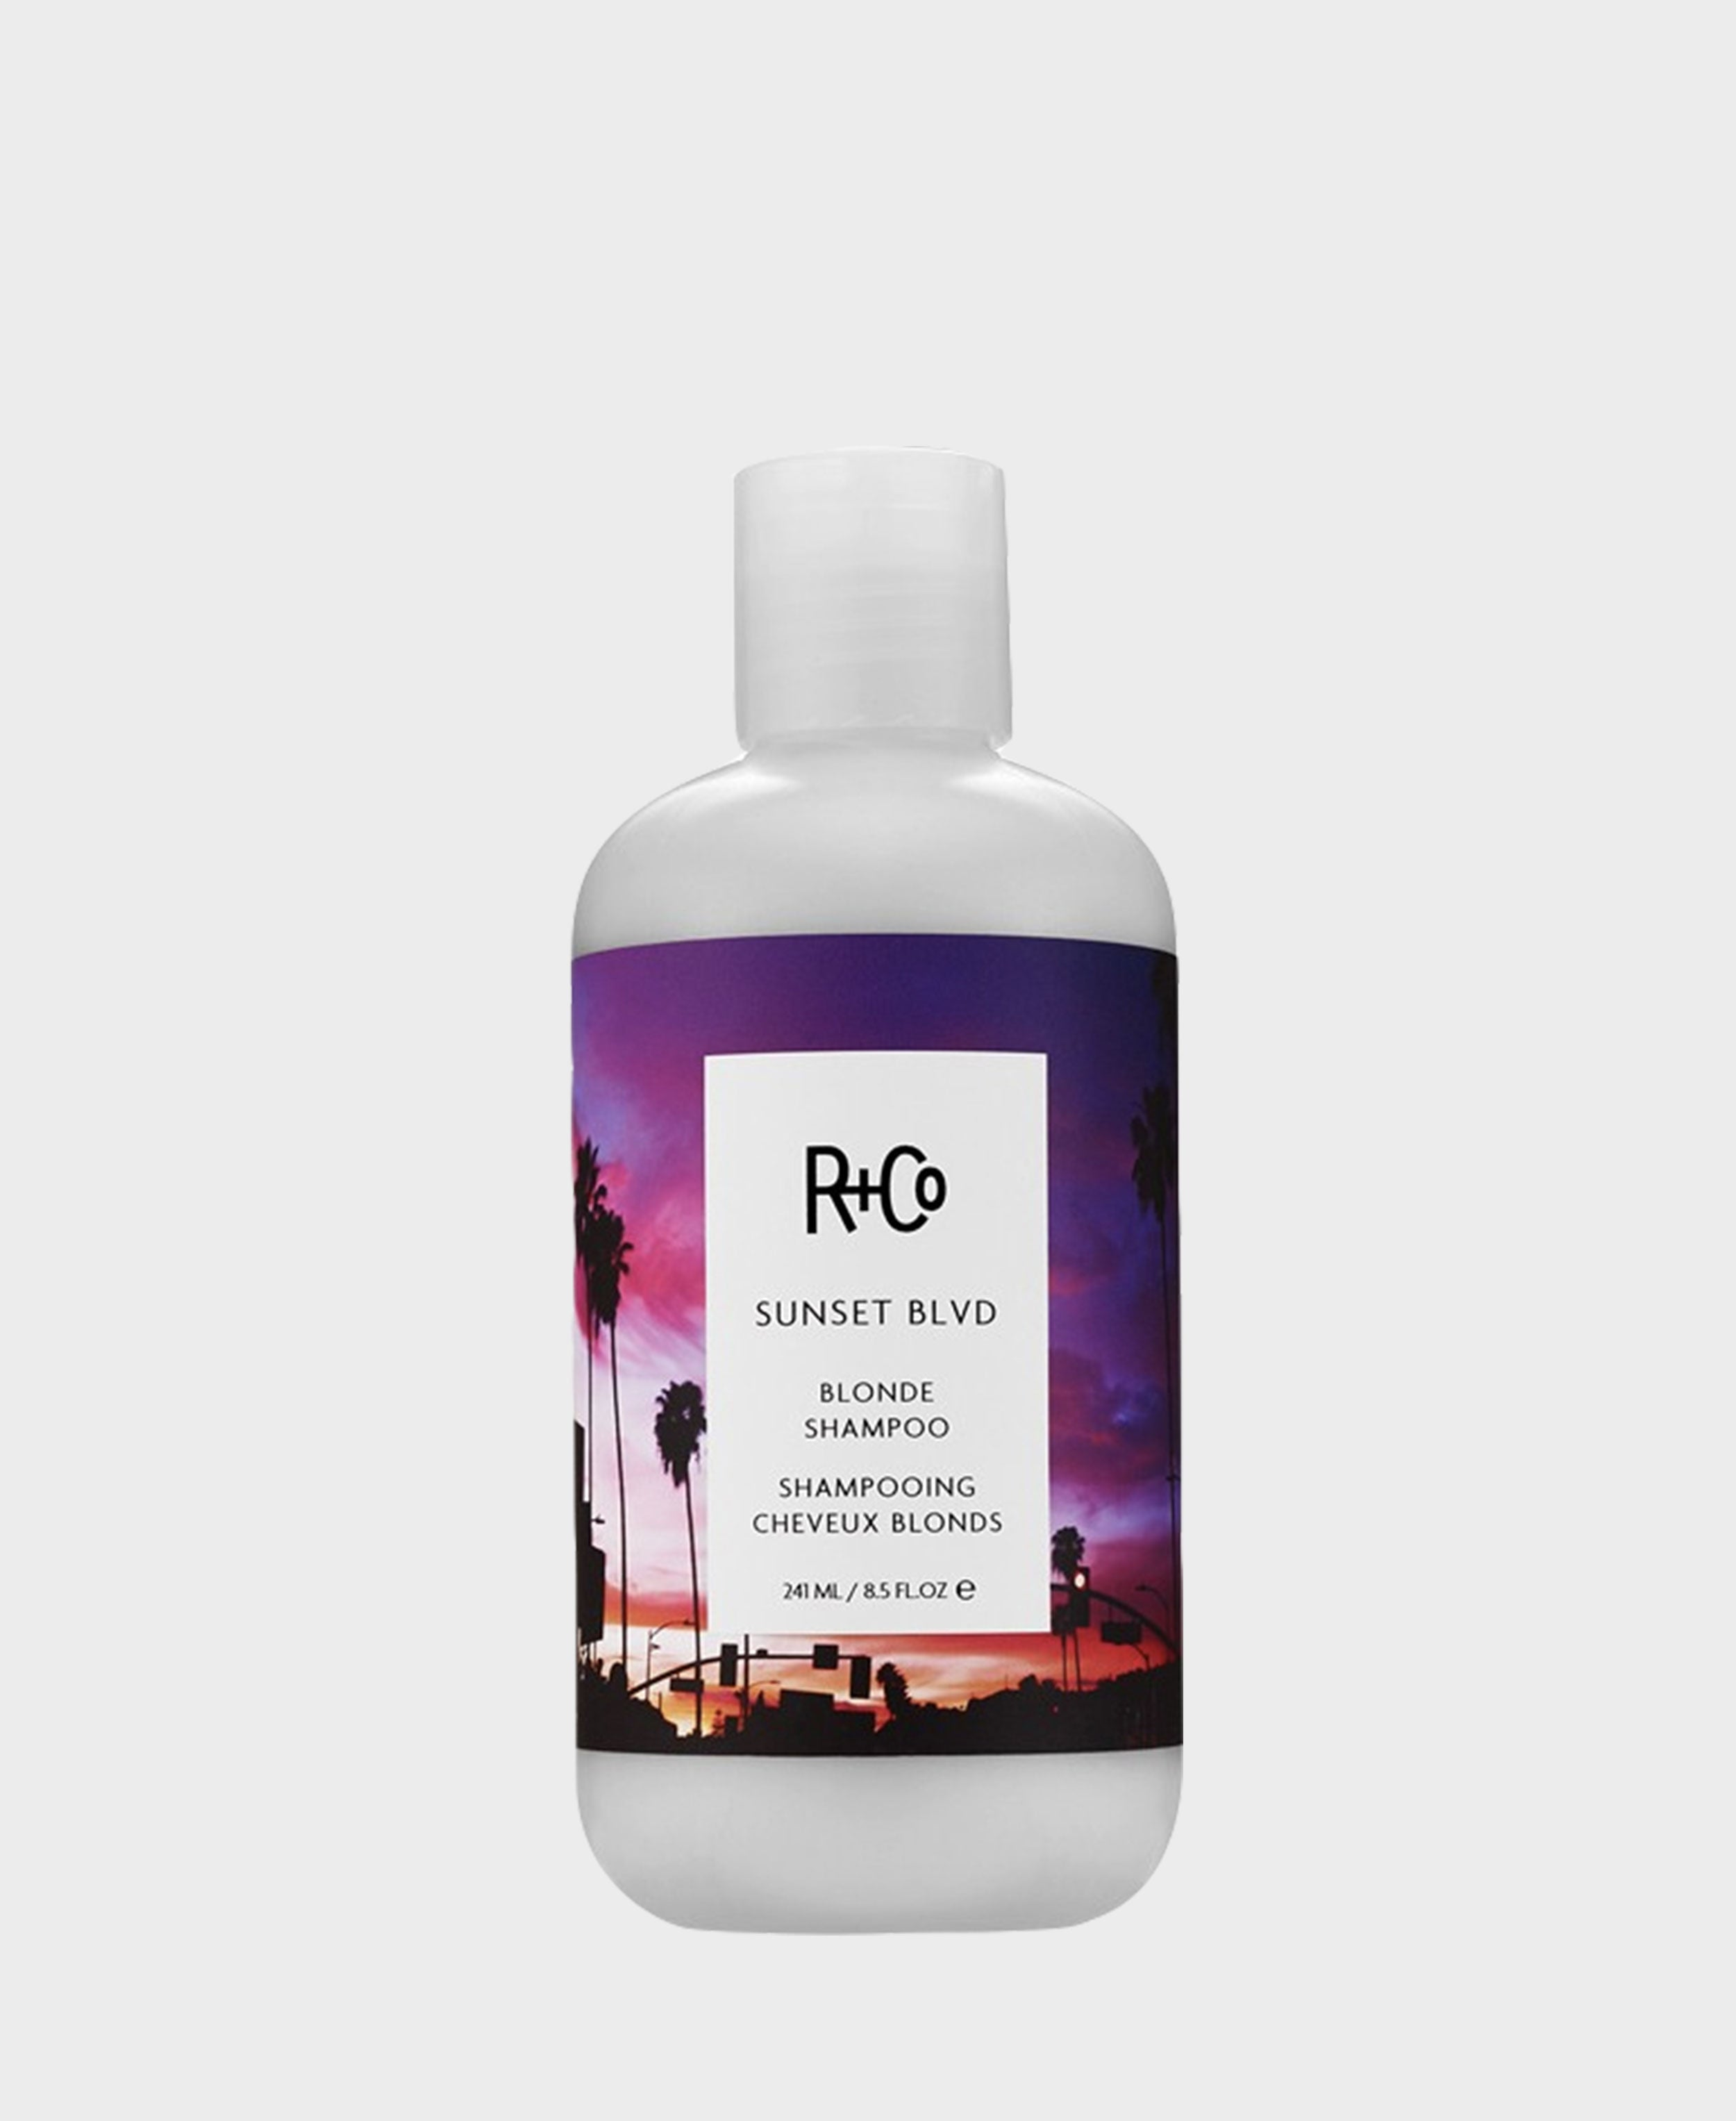 SUNSET BLVD BLONDE SHAMPOO